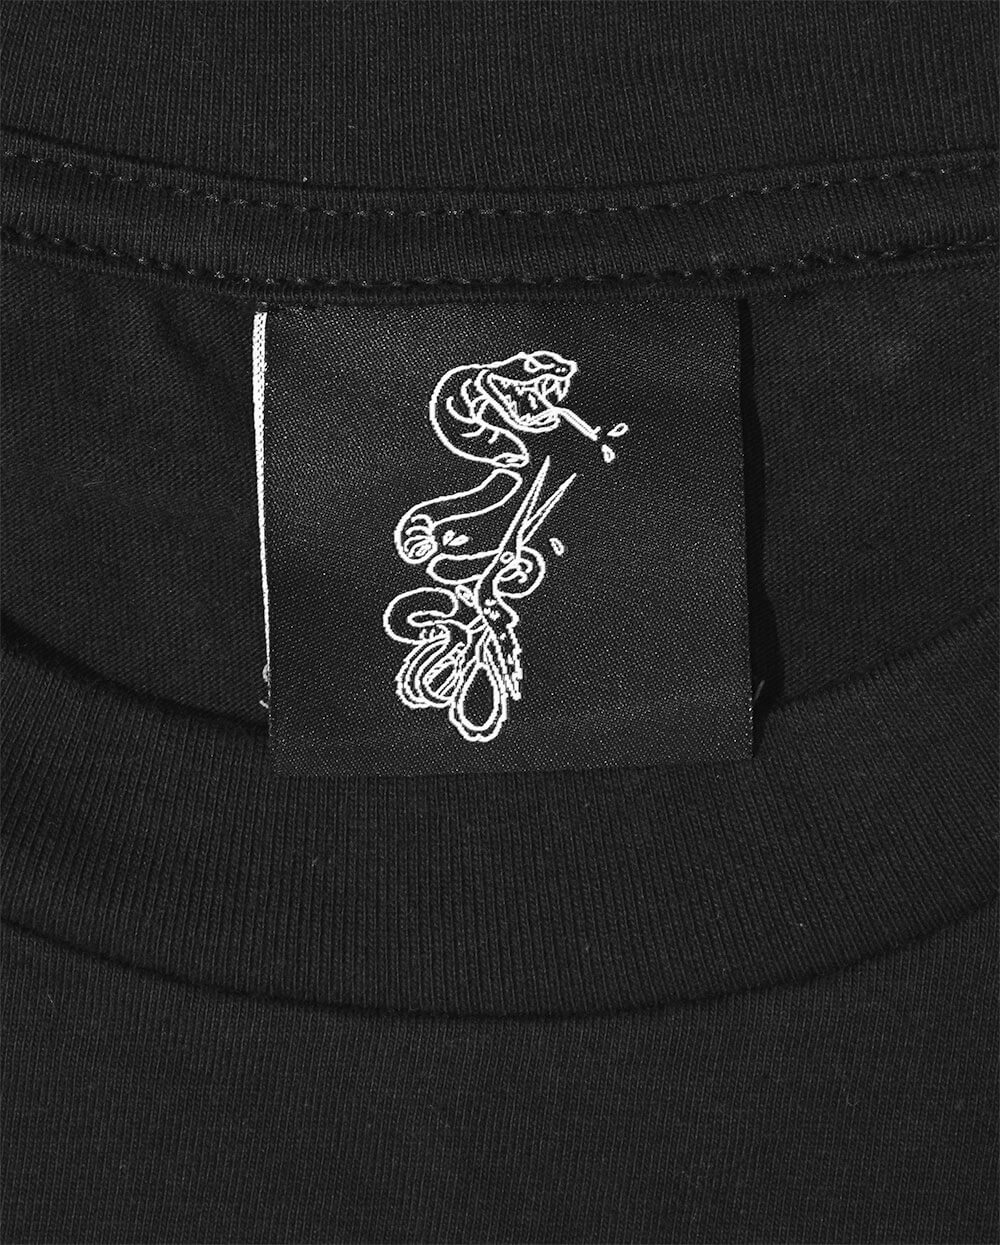 Woven Inside Neck Label of Snake on Black T Shirt